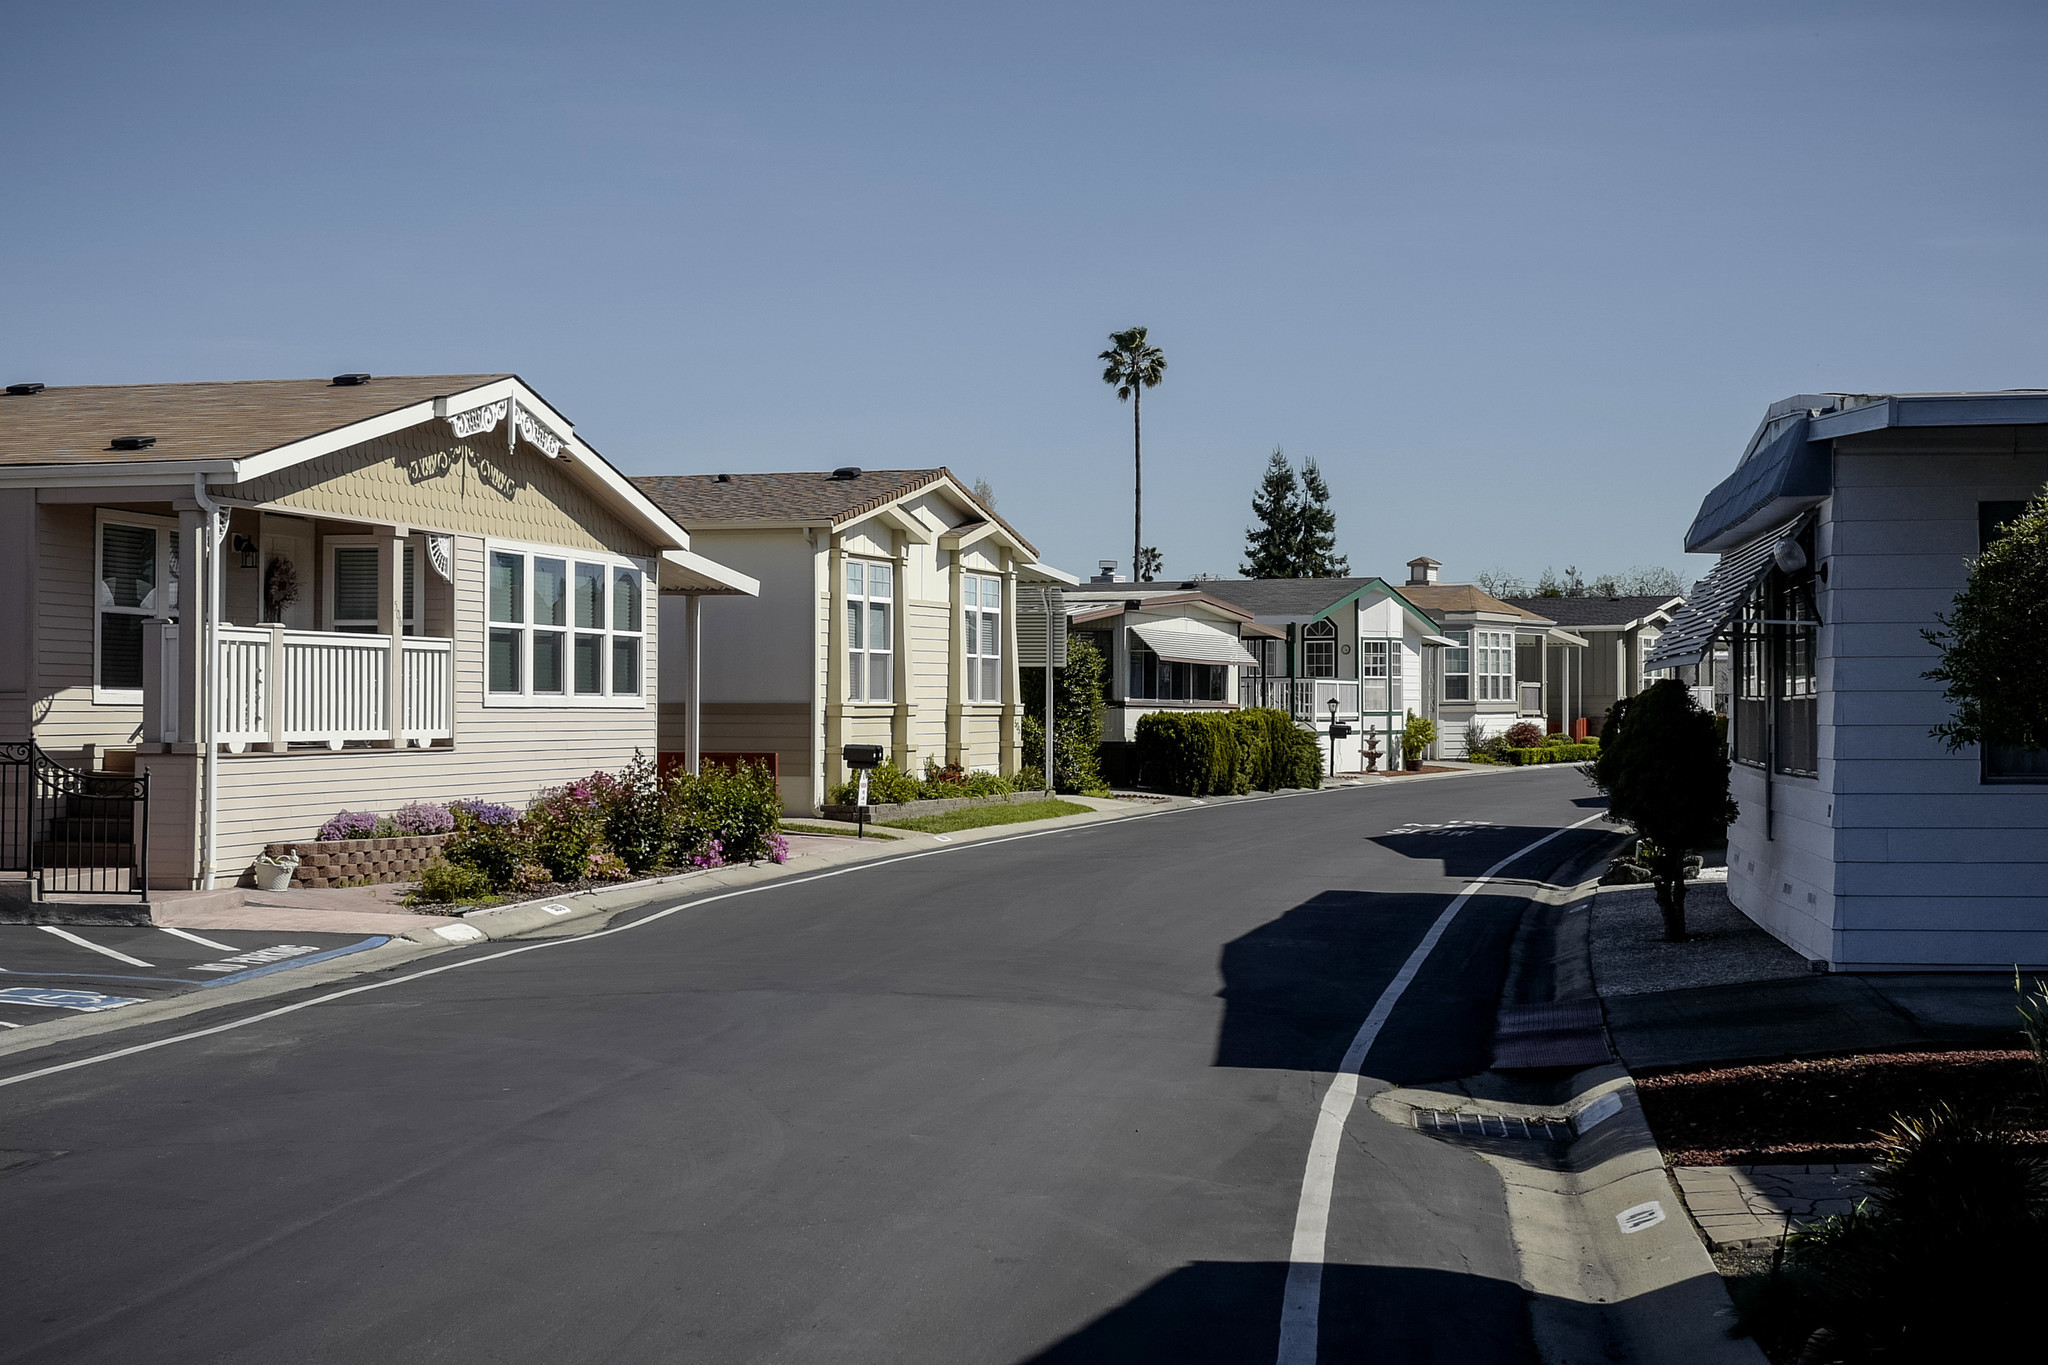 Despite the name, mobile homes can't be easily moved. Many of Plaza del Rey's homes have spacious living rooms, multiple bedrooms and bathrooms, porches, gardens and garages.